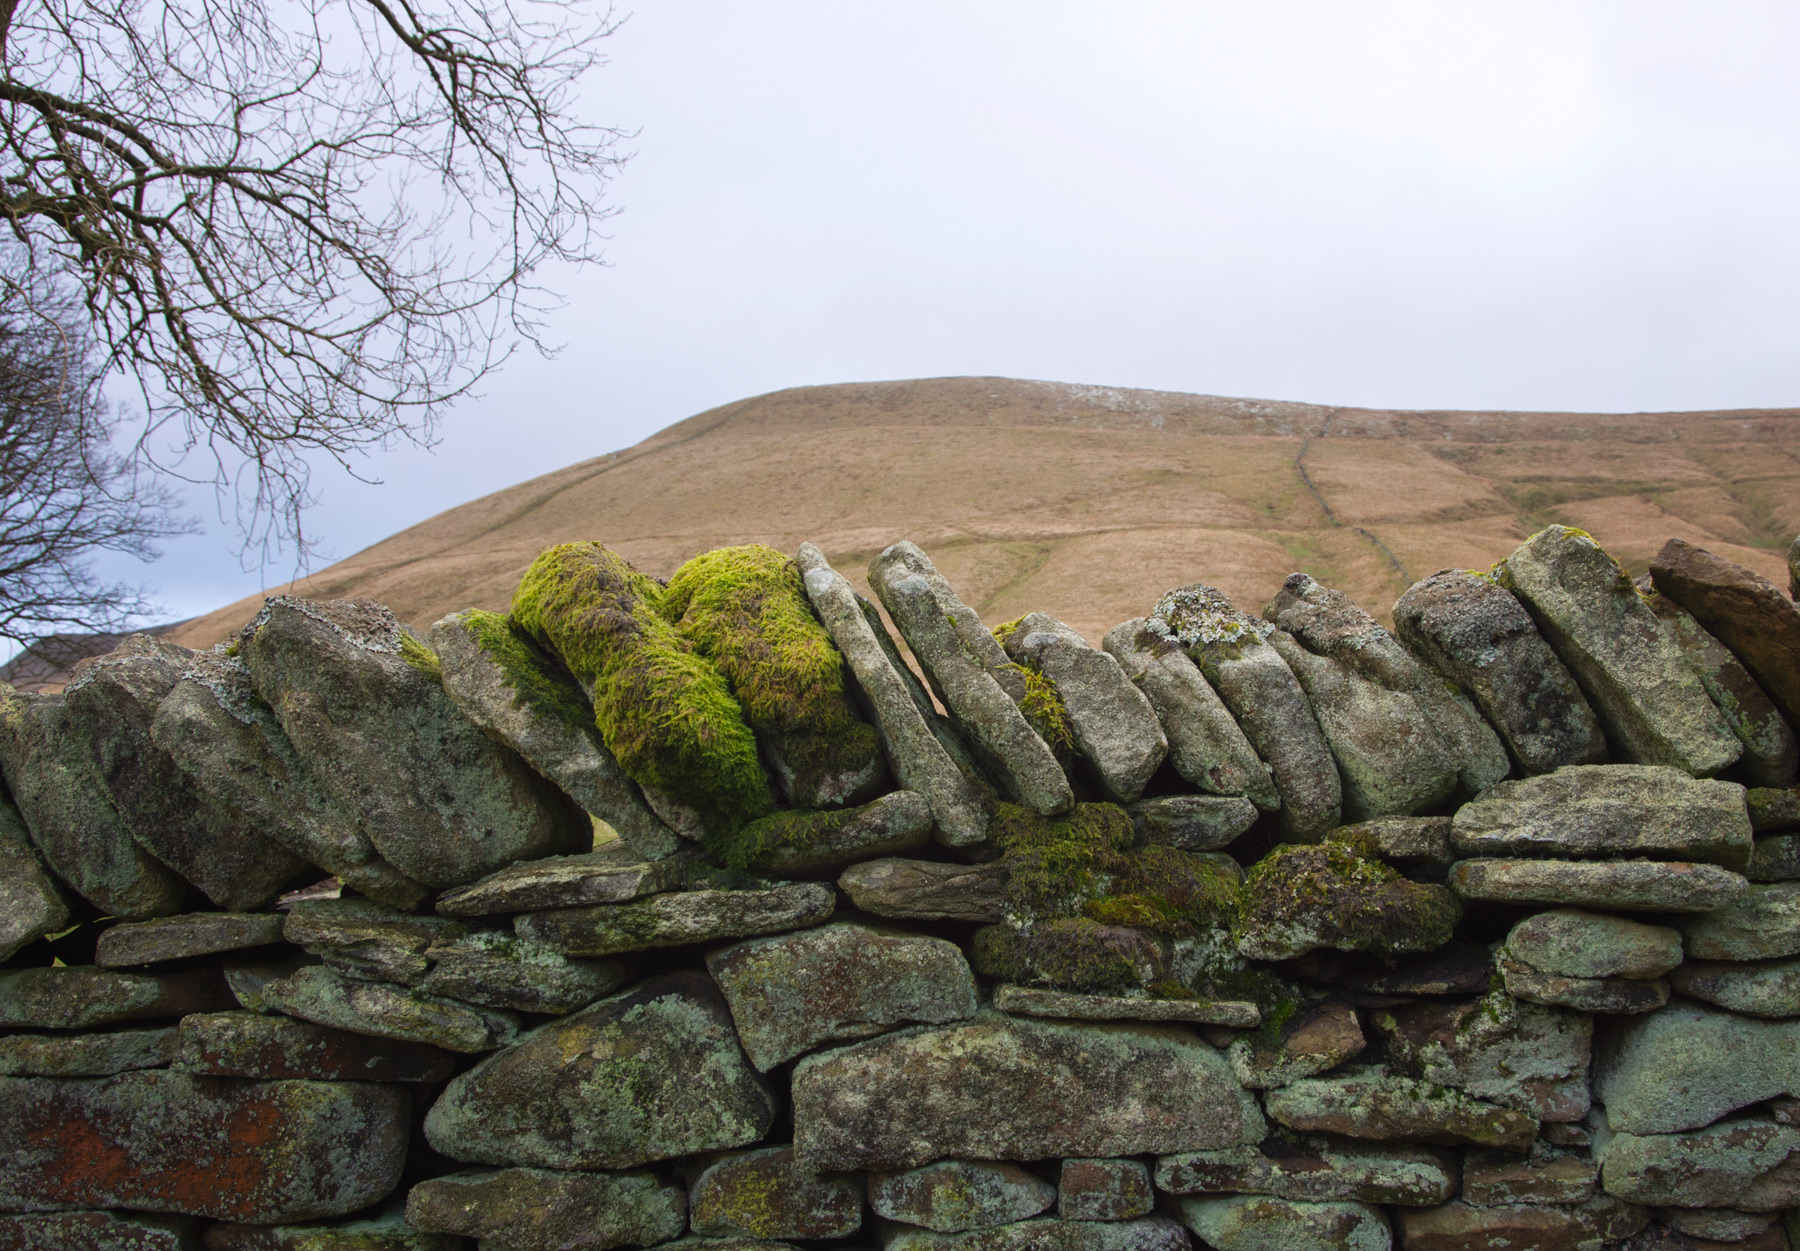 Moss covered wall stones